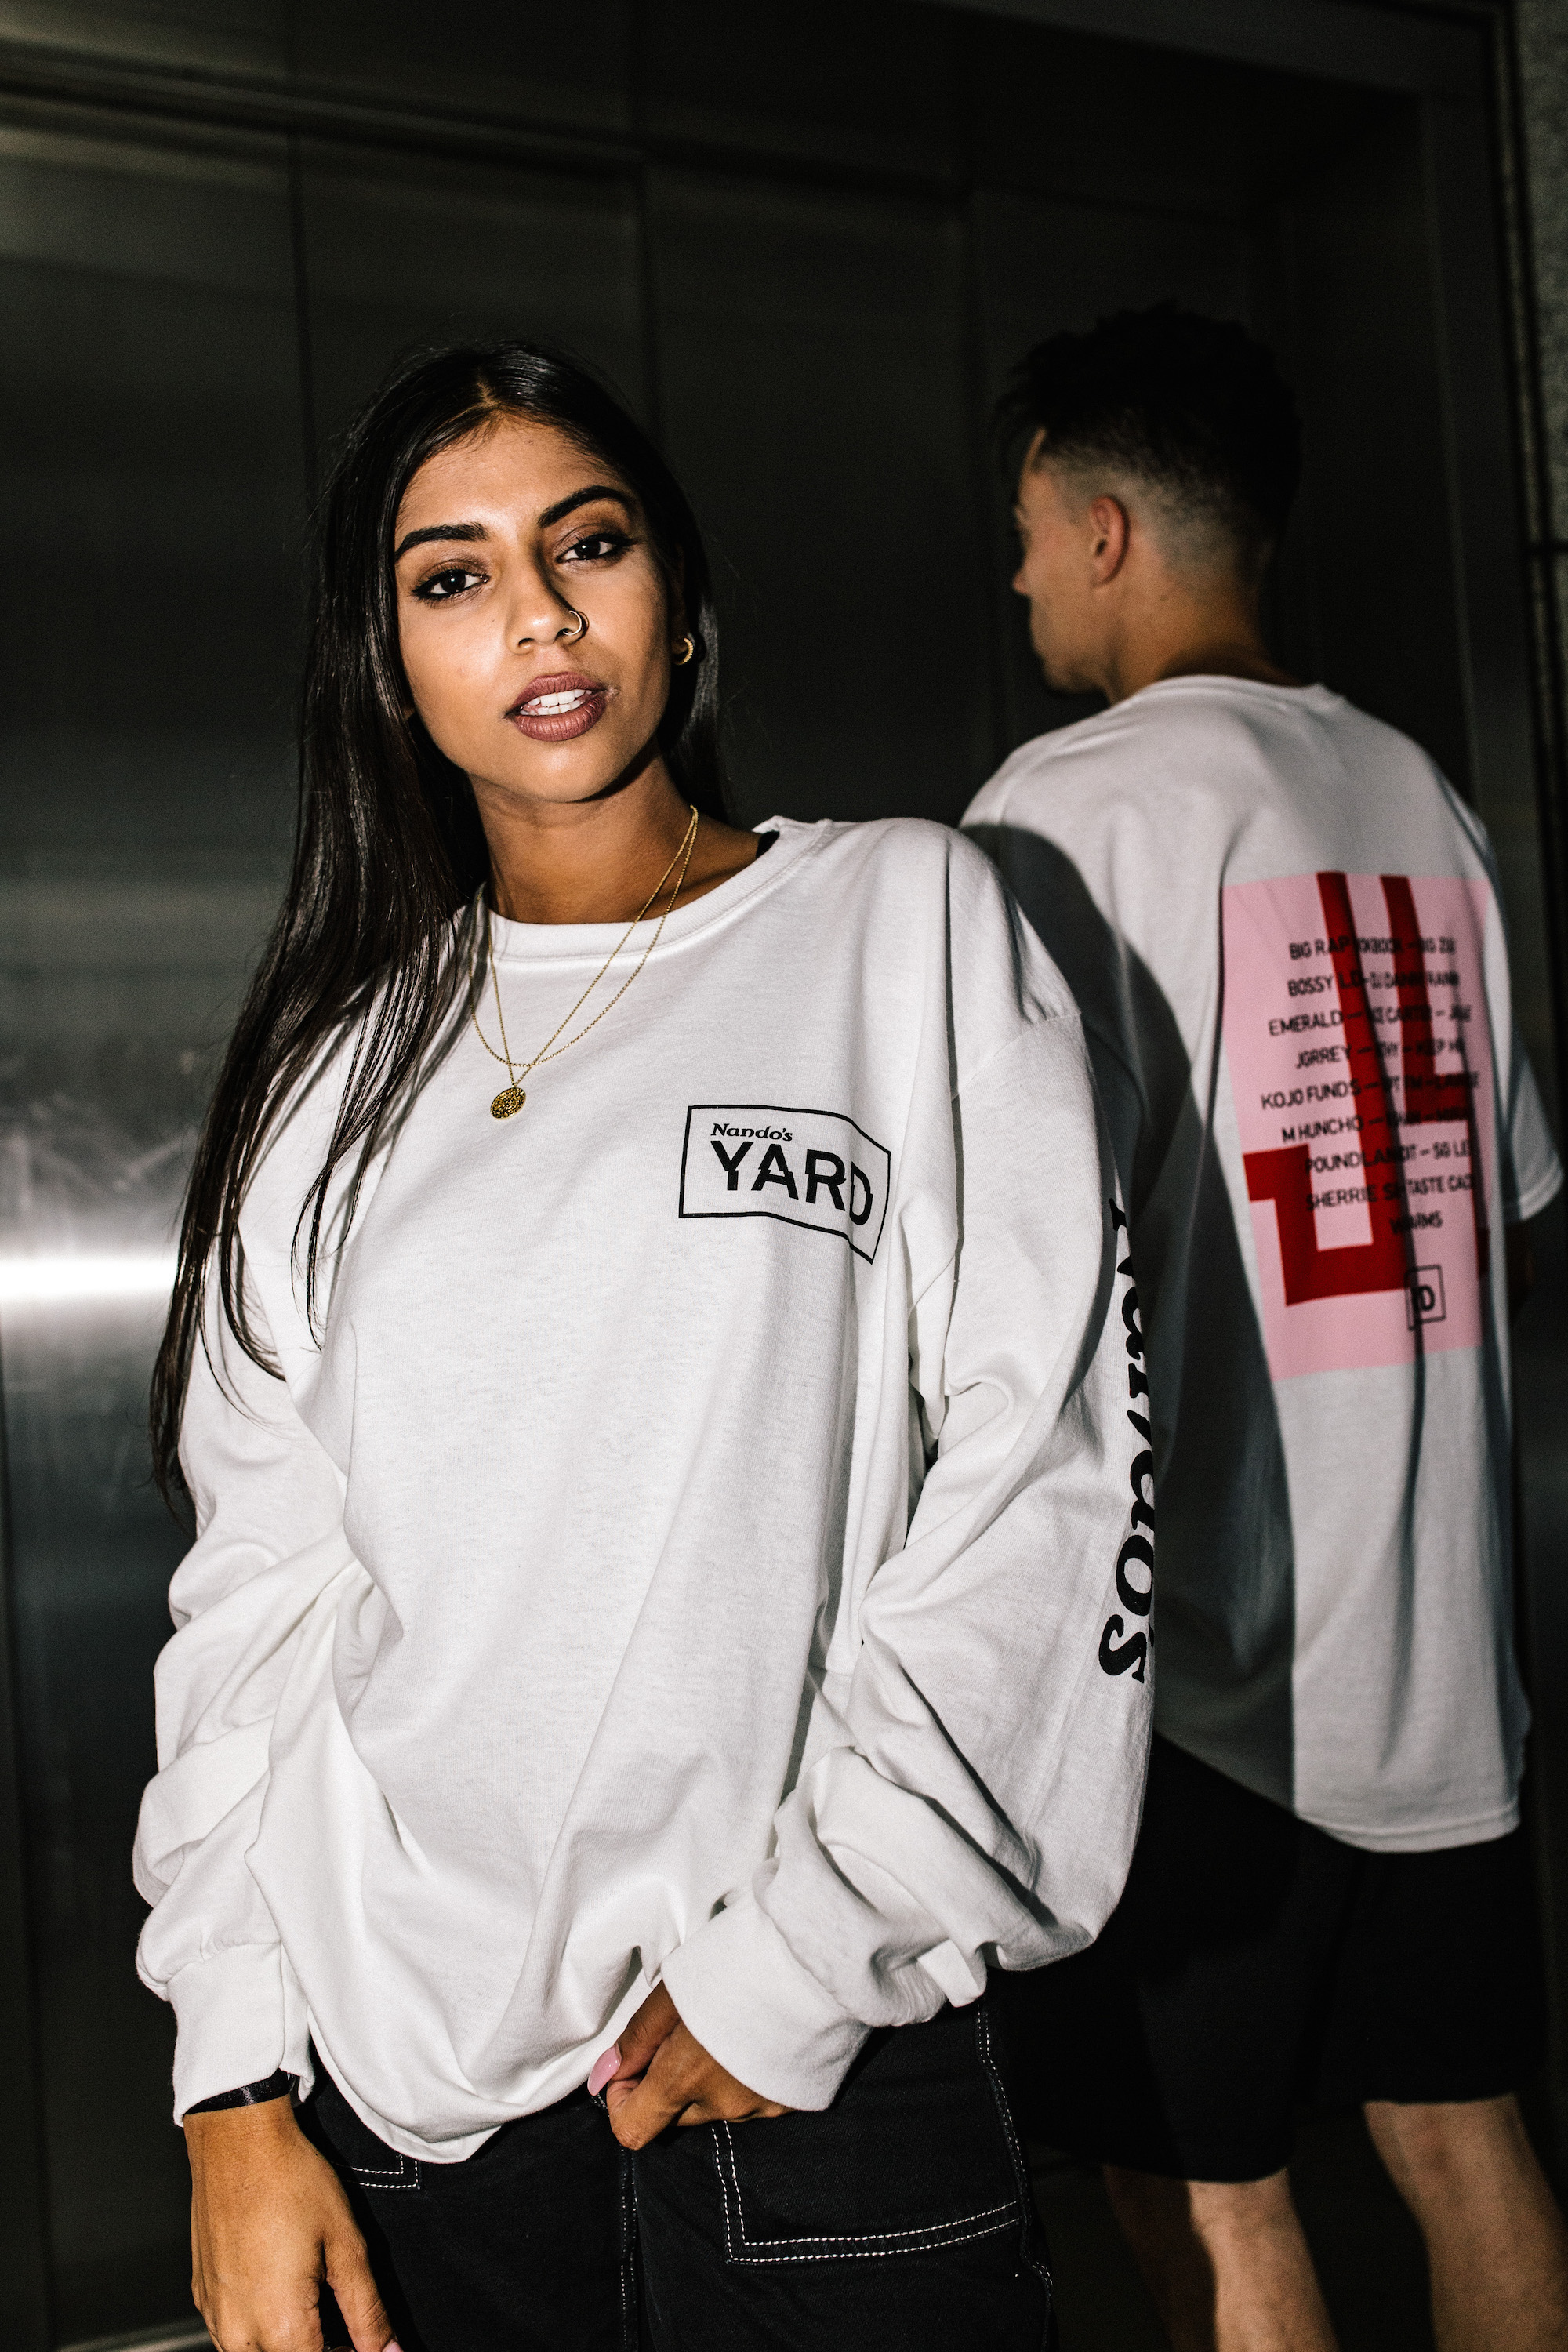 Nando's Yard merchandise long sleeve